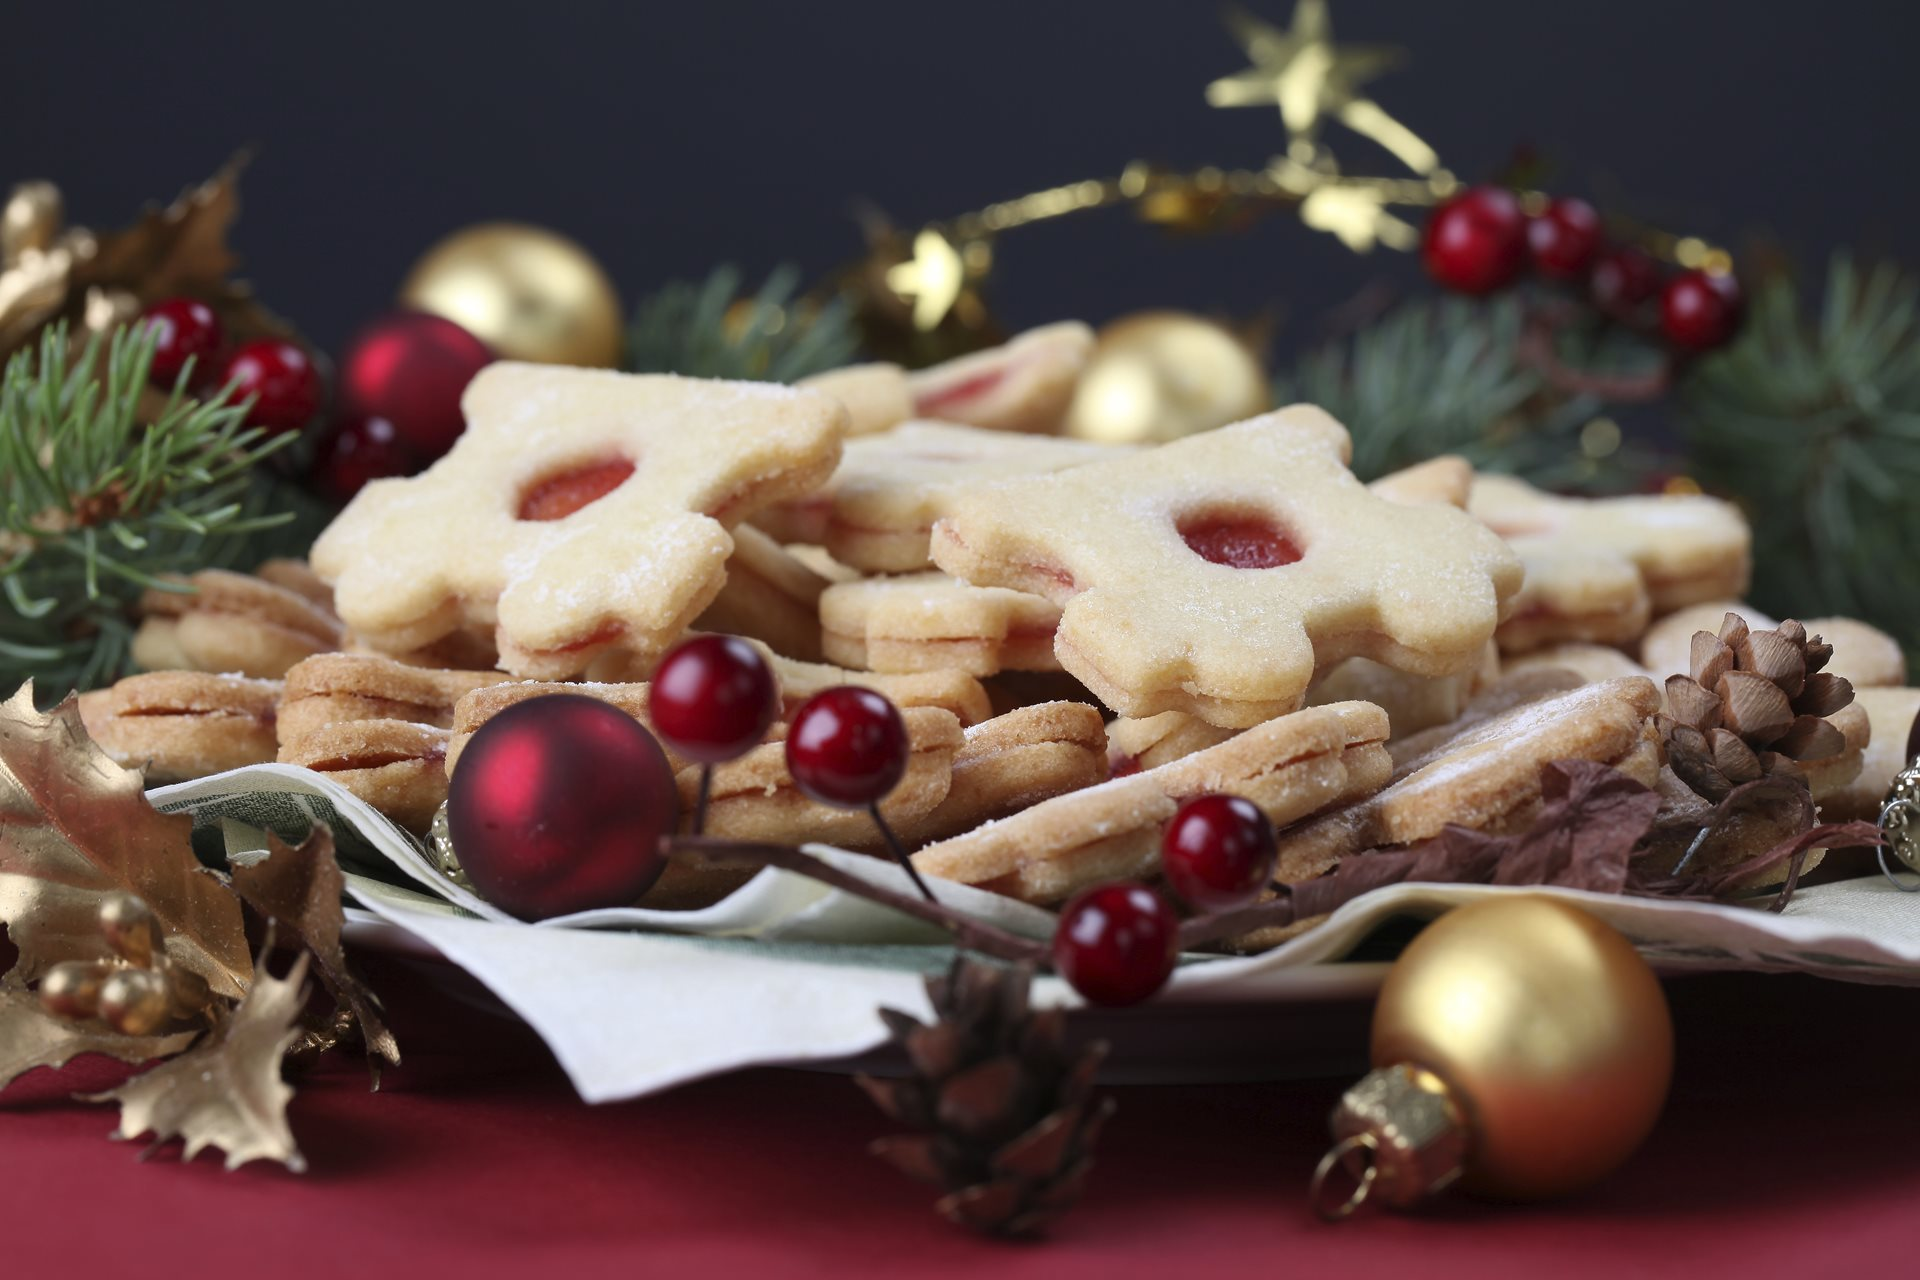 Get a Taste of Czech Christmas: A Lot of Cookies and Great Food